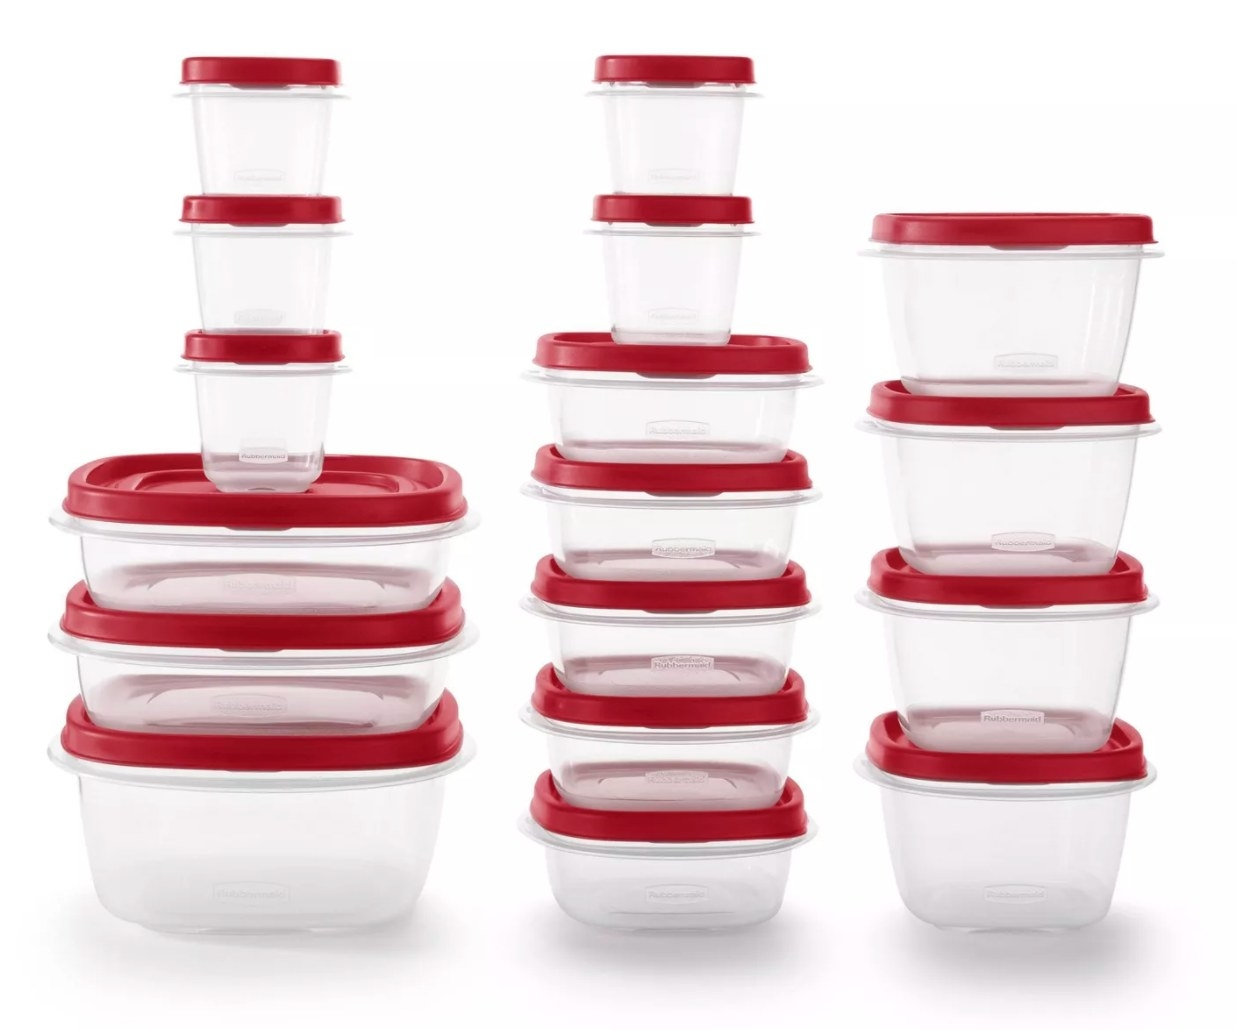 Three stacks of clear plastic food storage containers with red lids